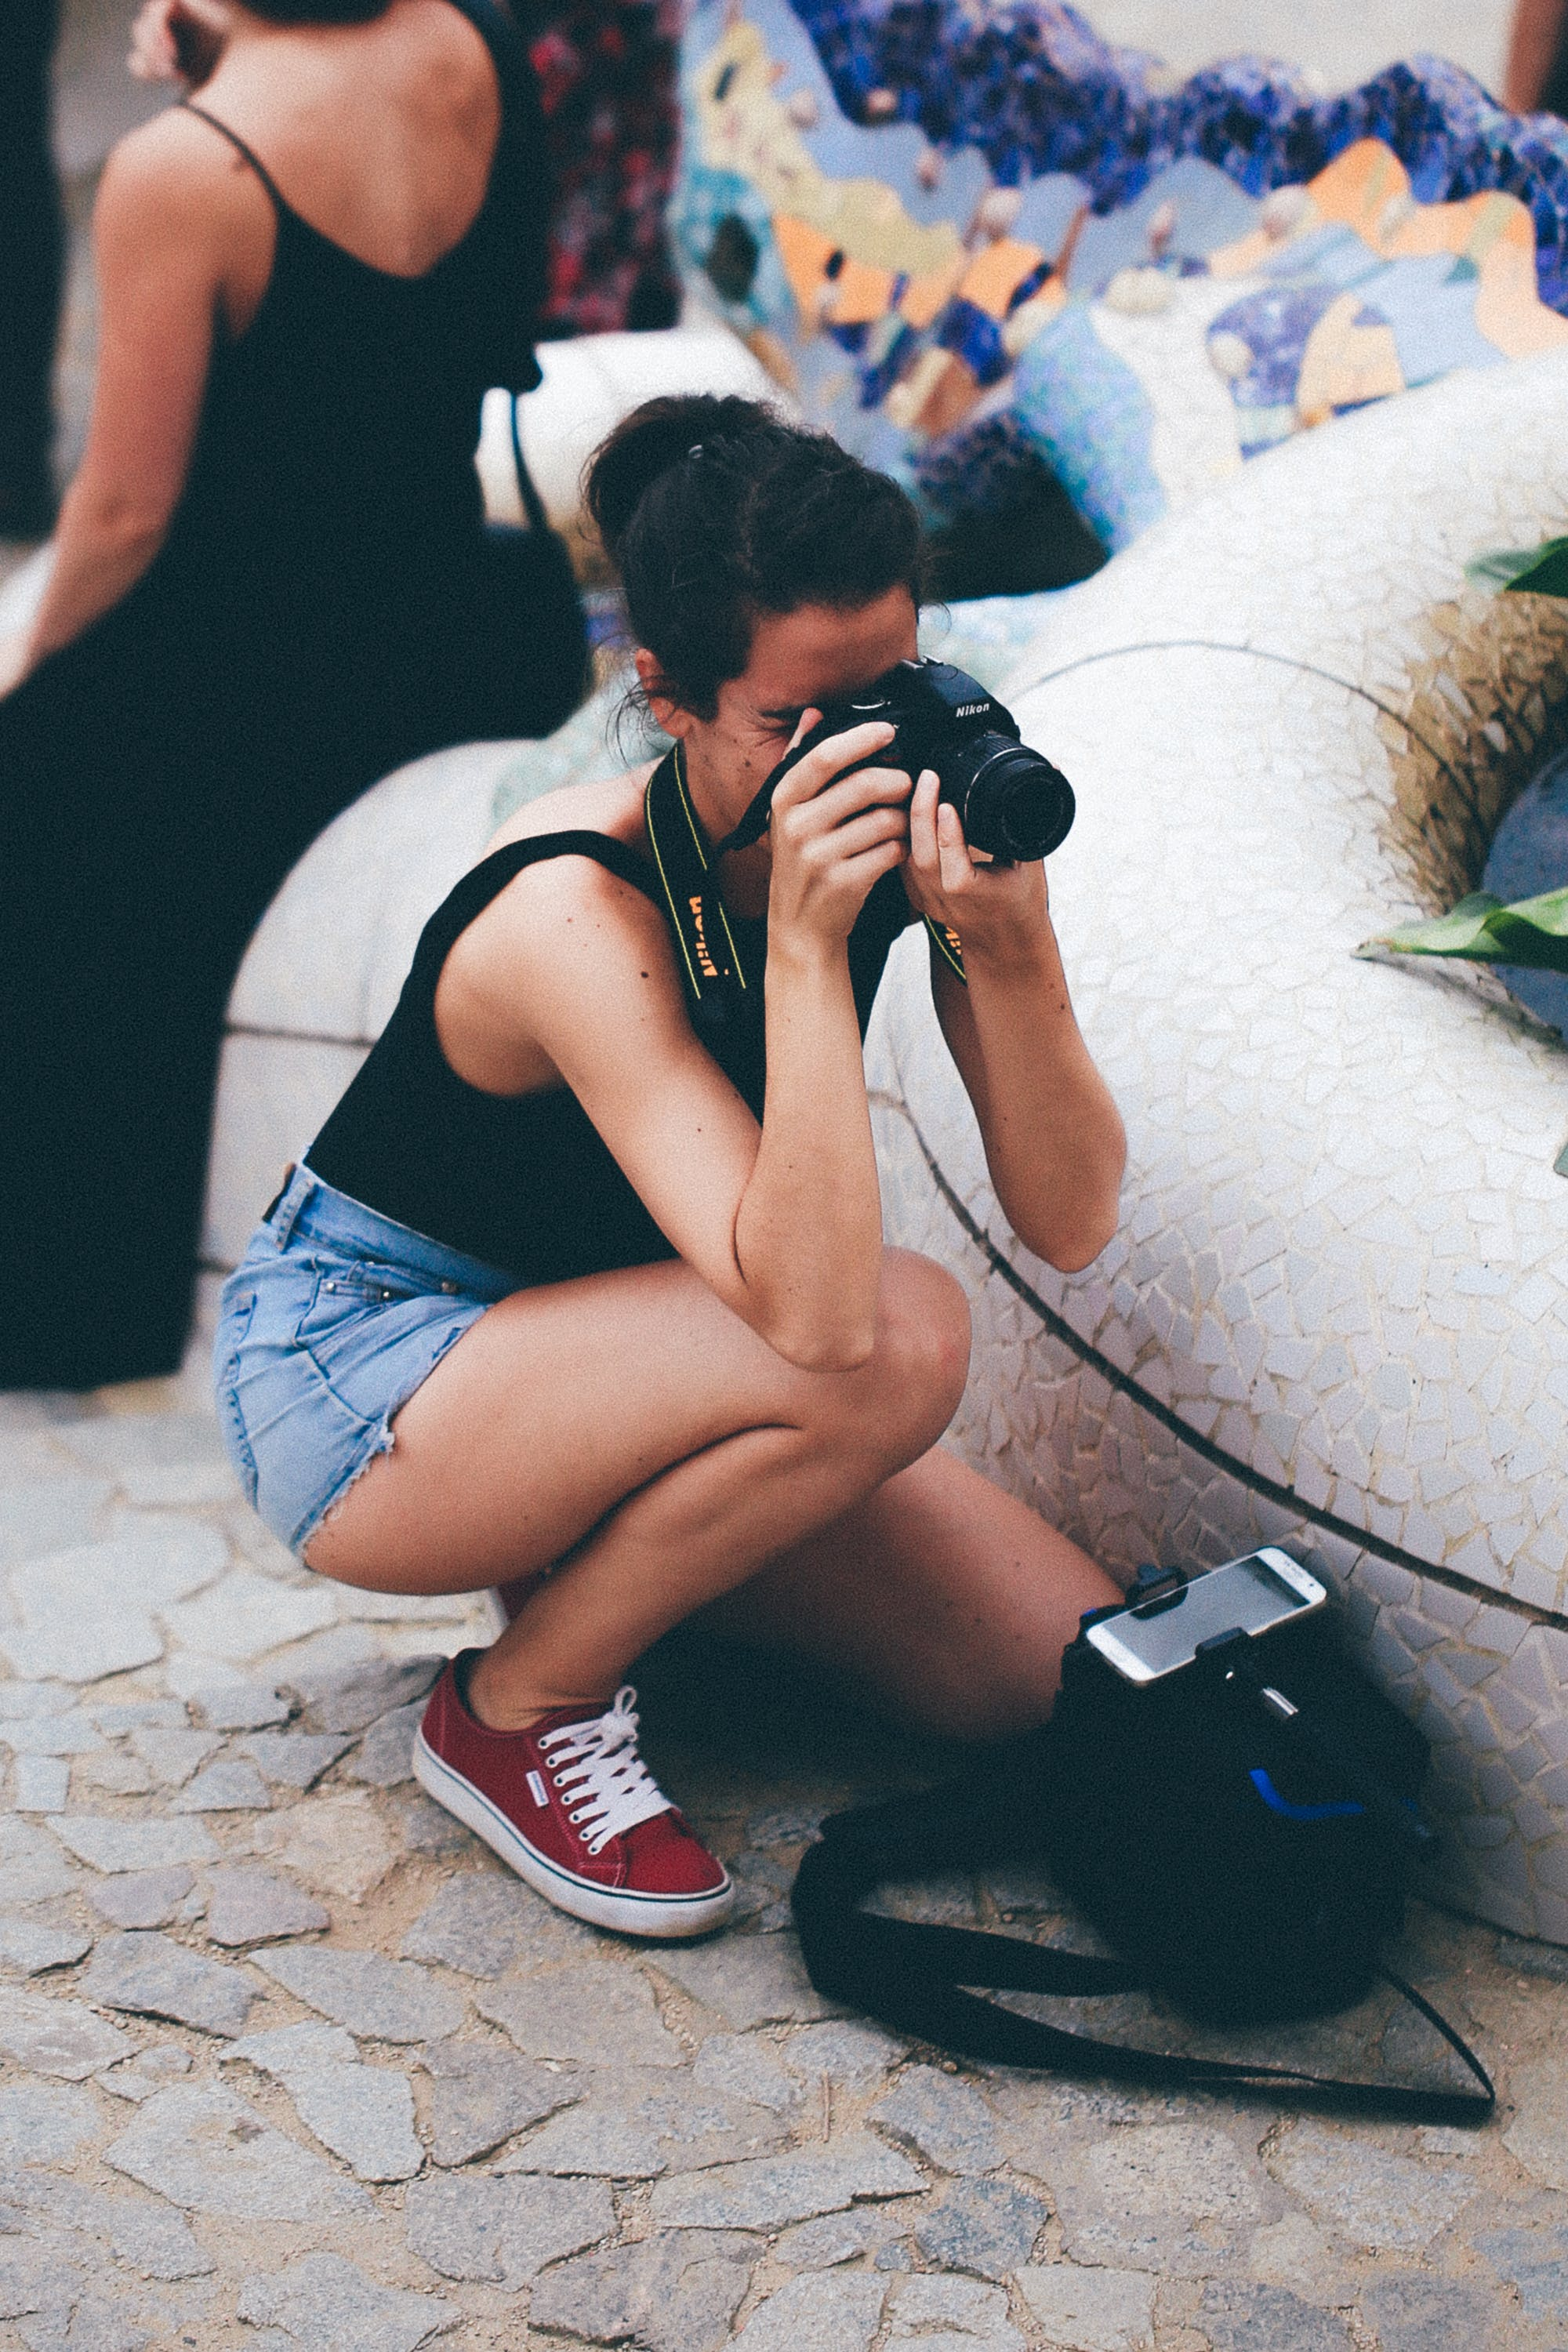 Woman in Black Tank Top Holding Dslr Camera